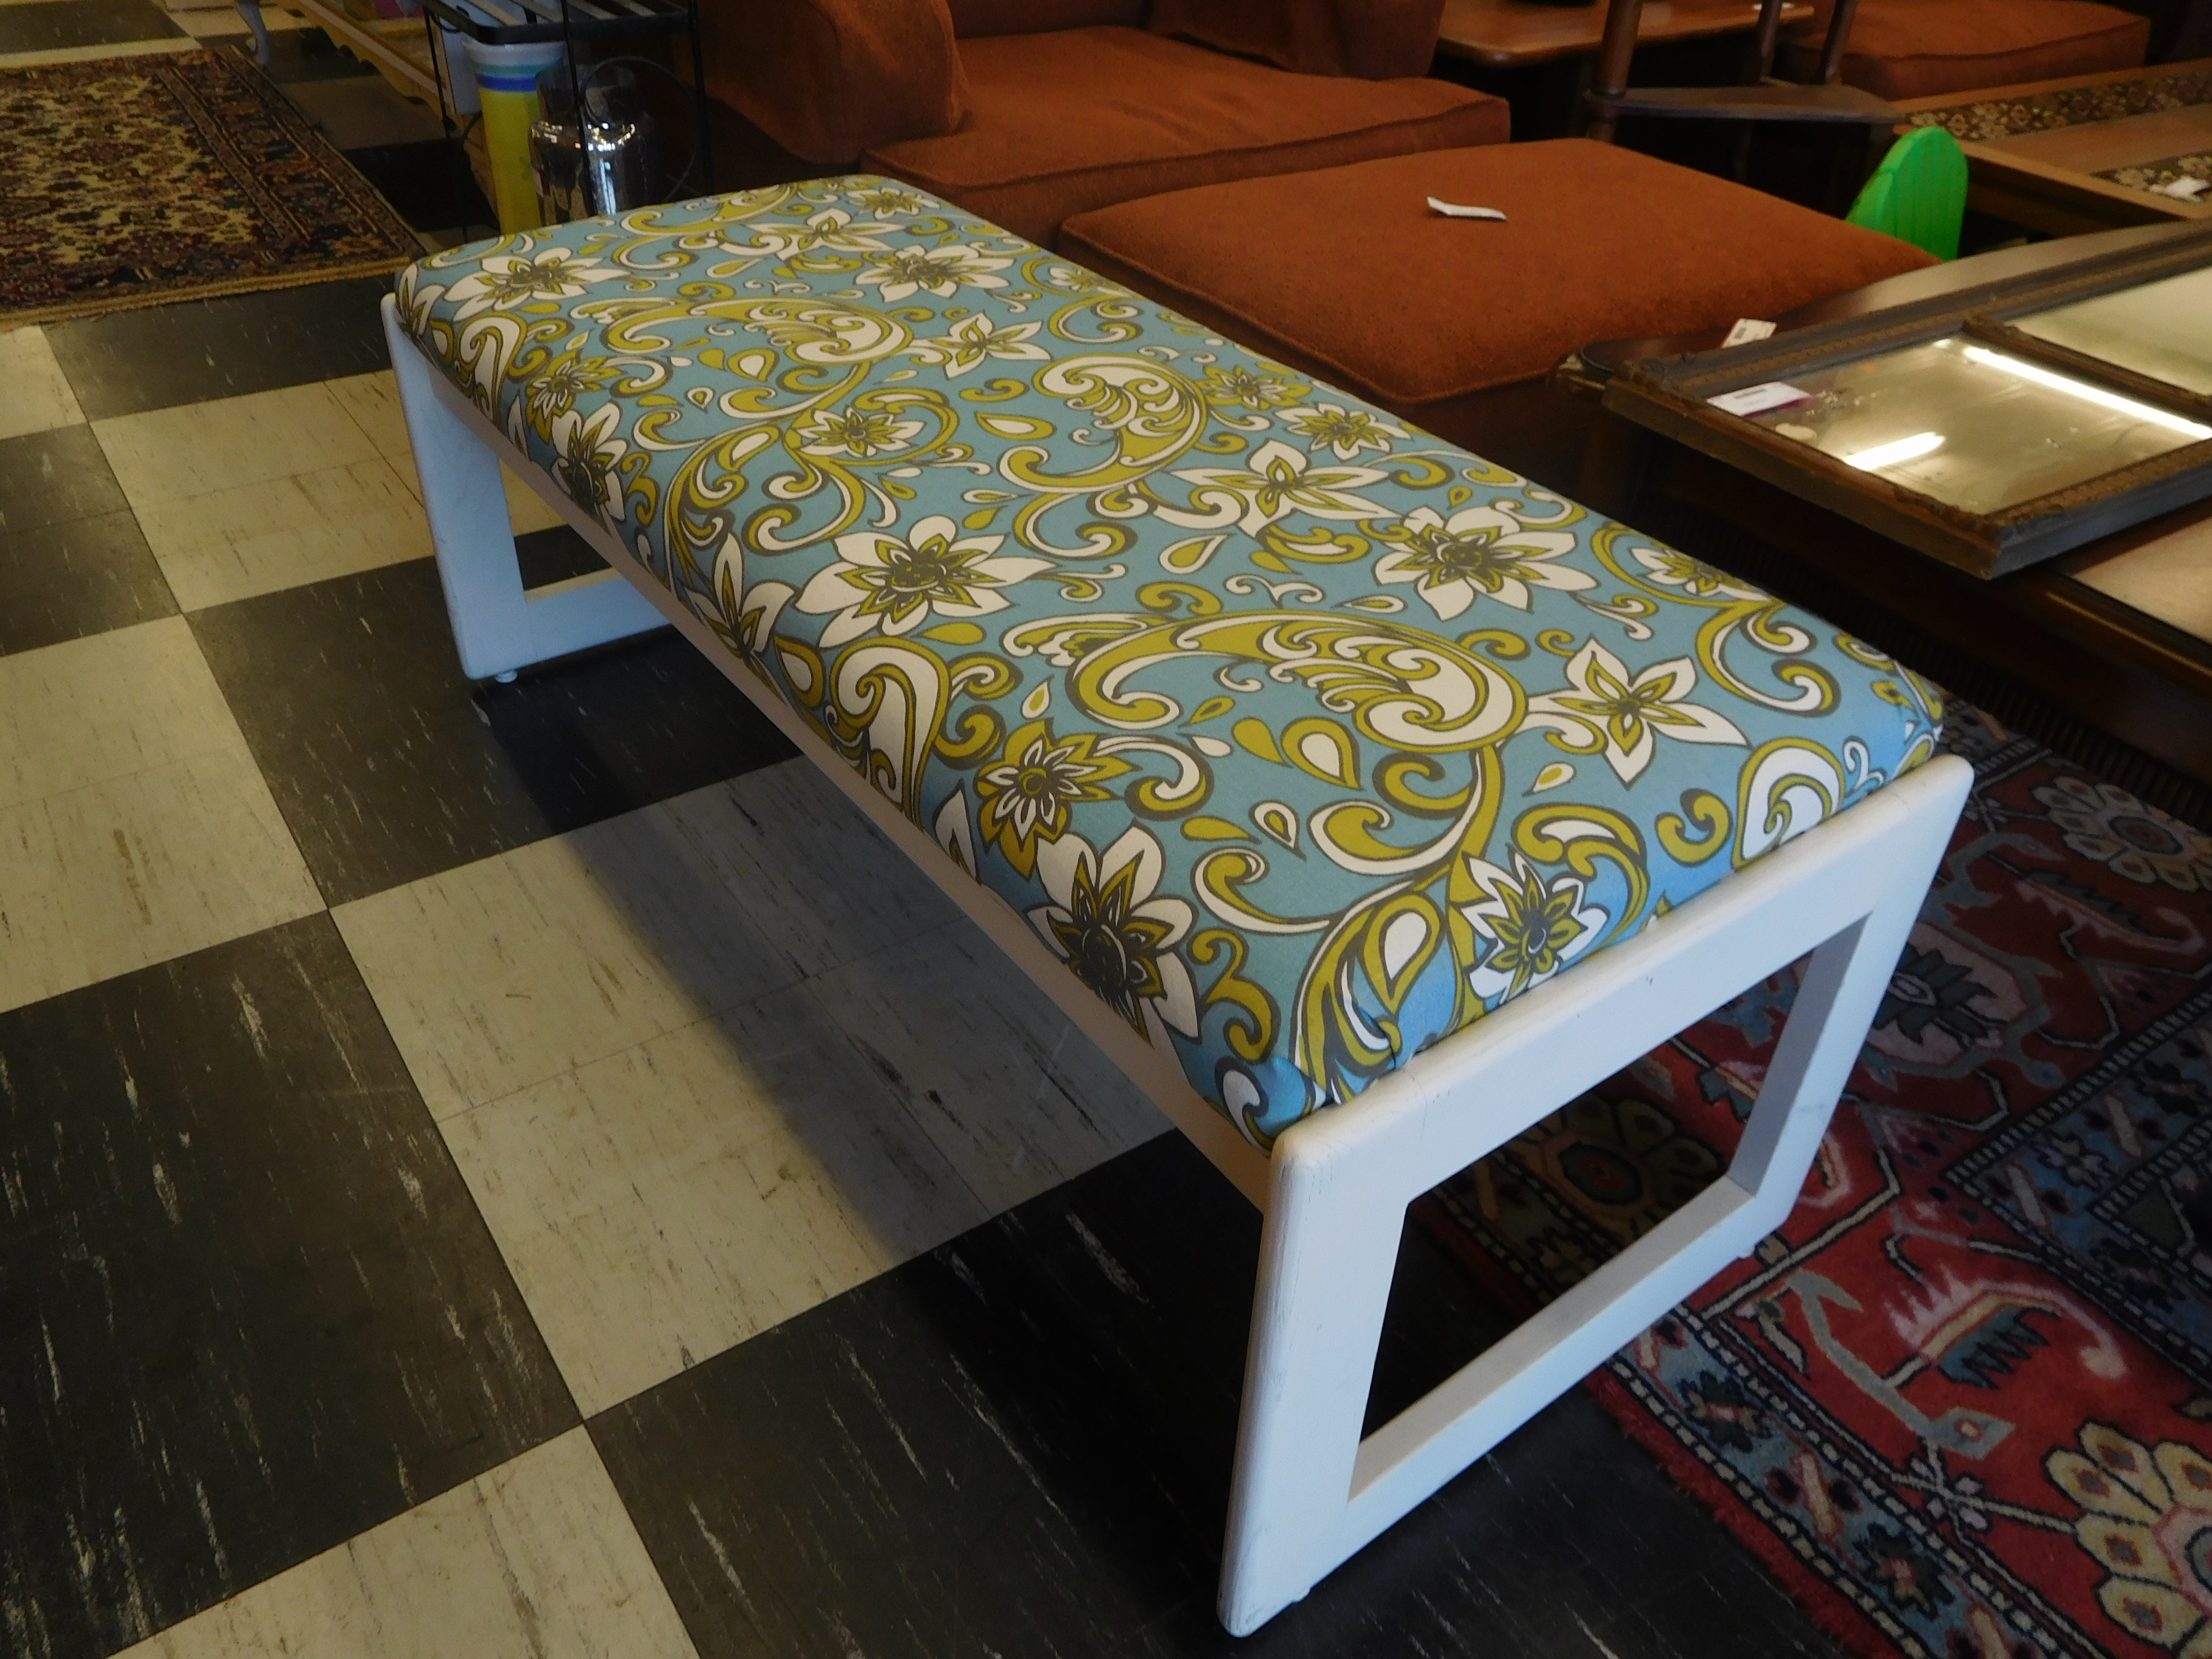 Upholstered Window Bench / Extra Seating